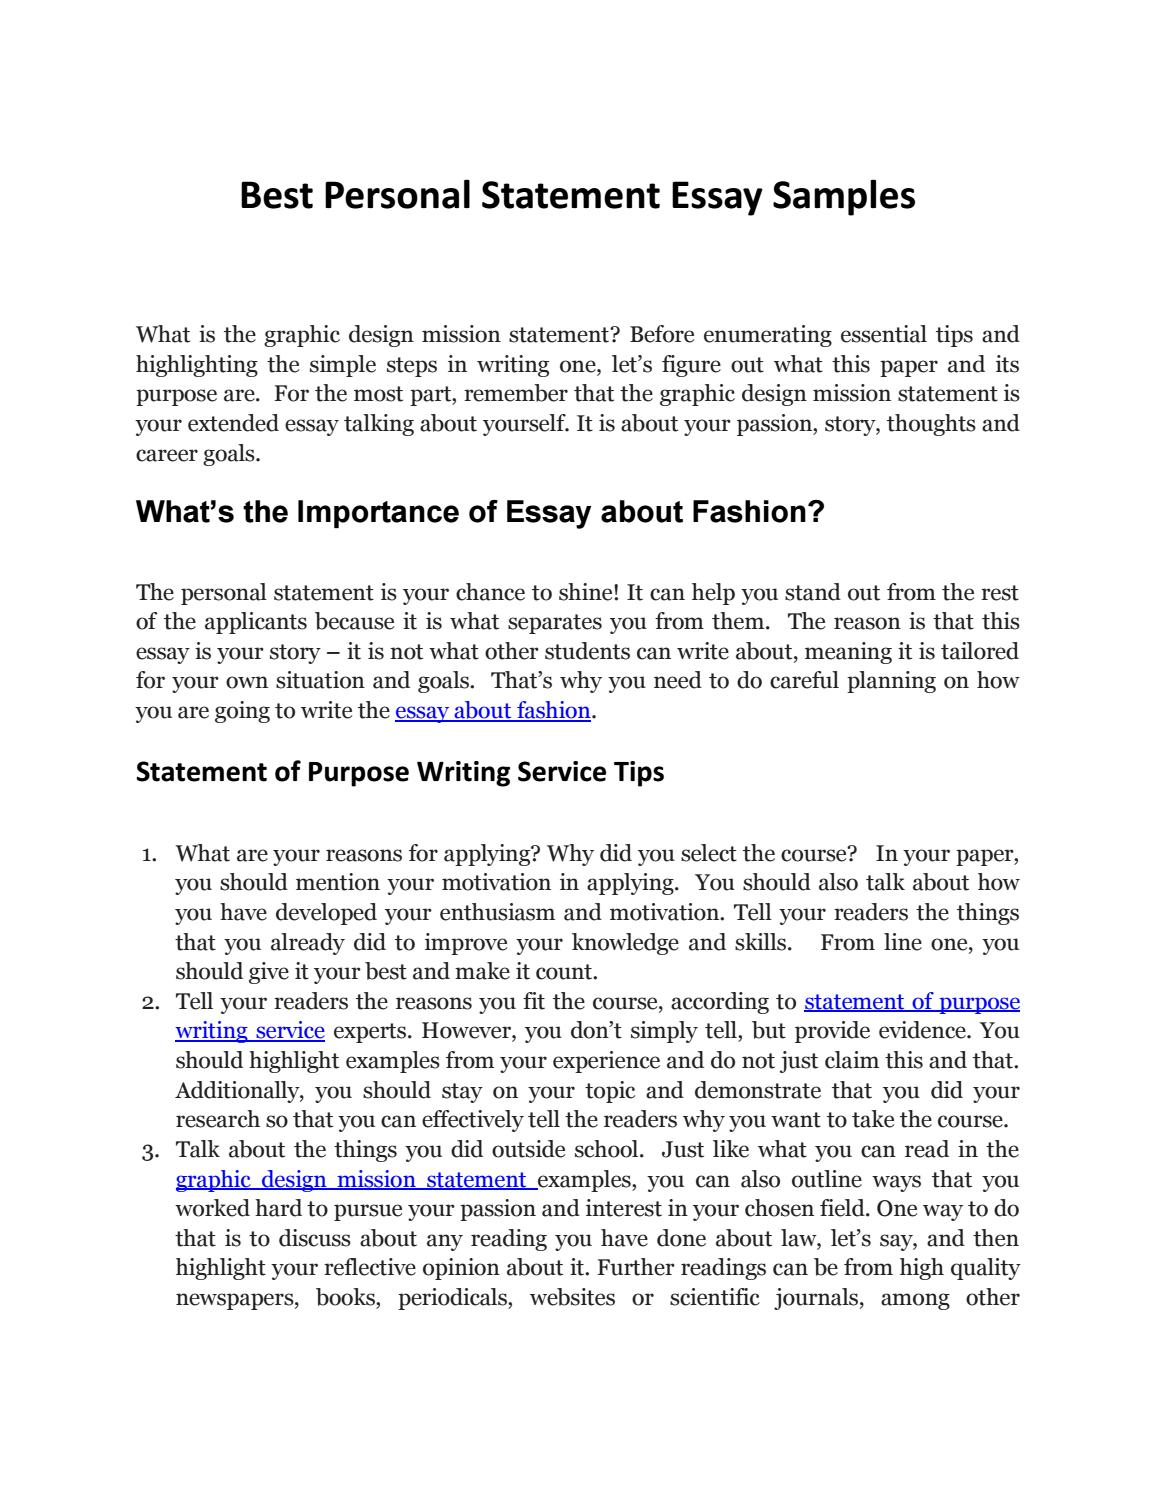 designing a degree essay University degree university resources planning and designing sign up to view the whole essay and download the pdf for anytime access on your computer.